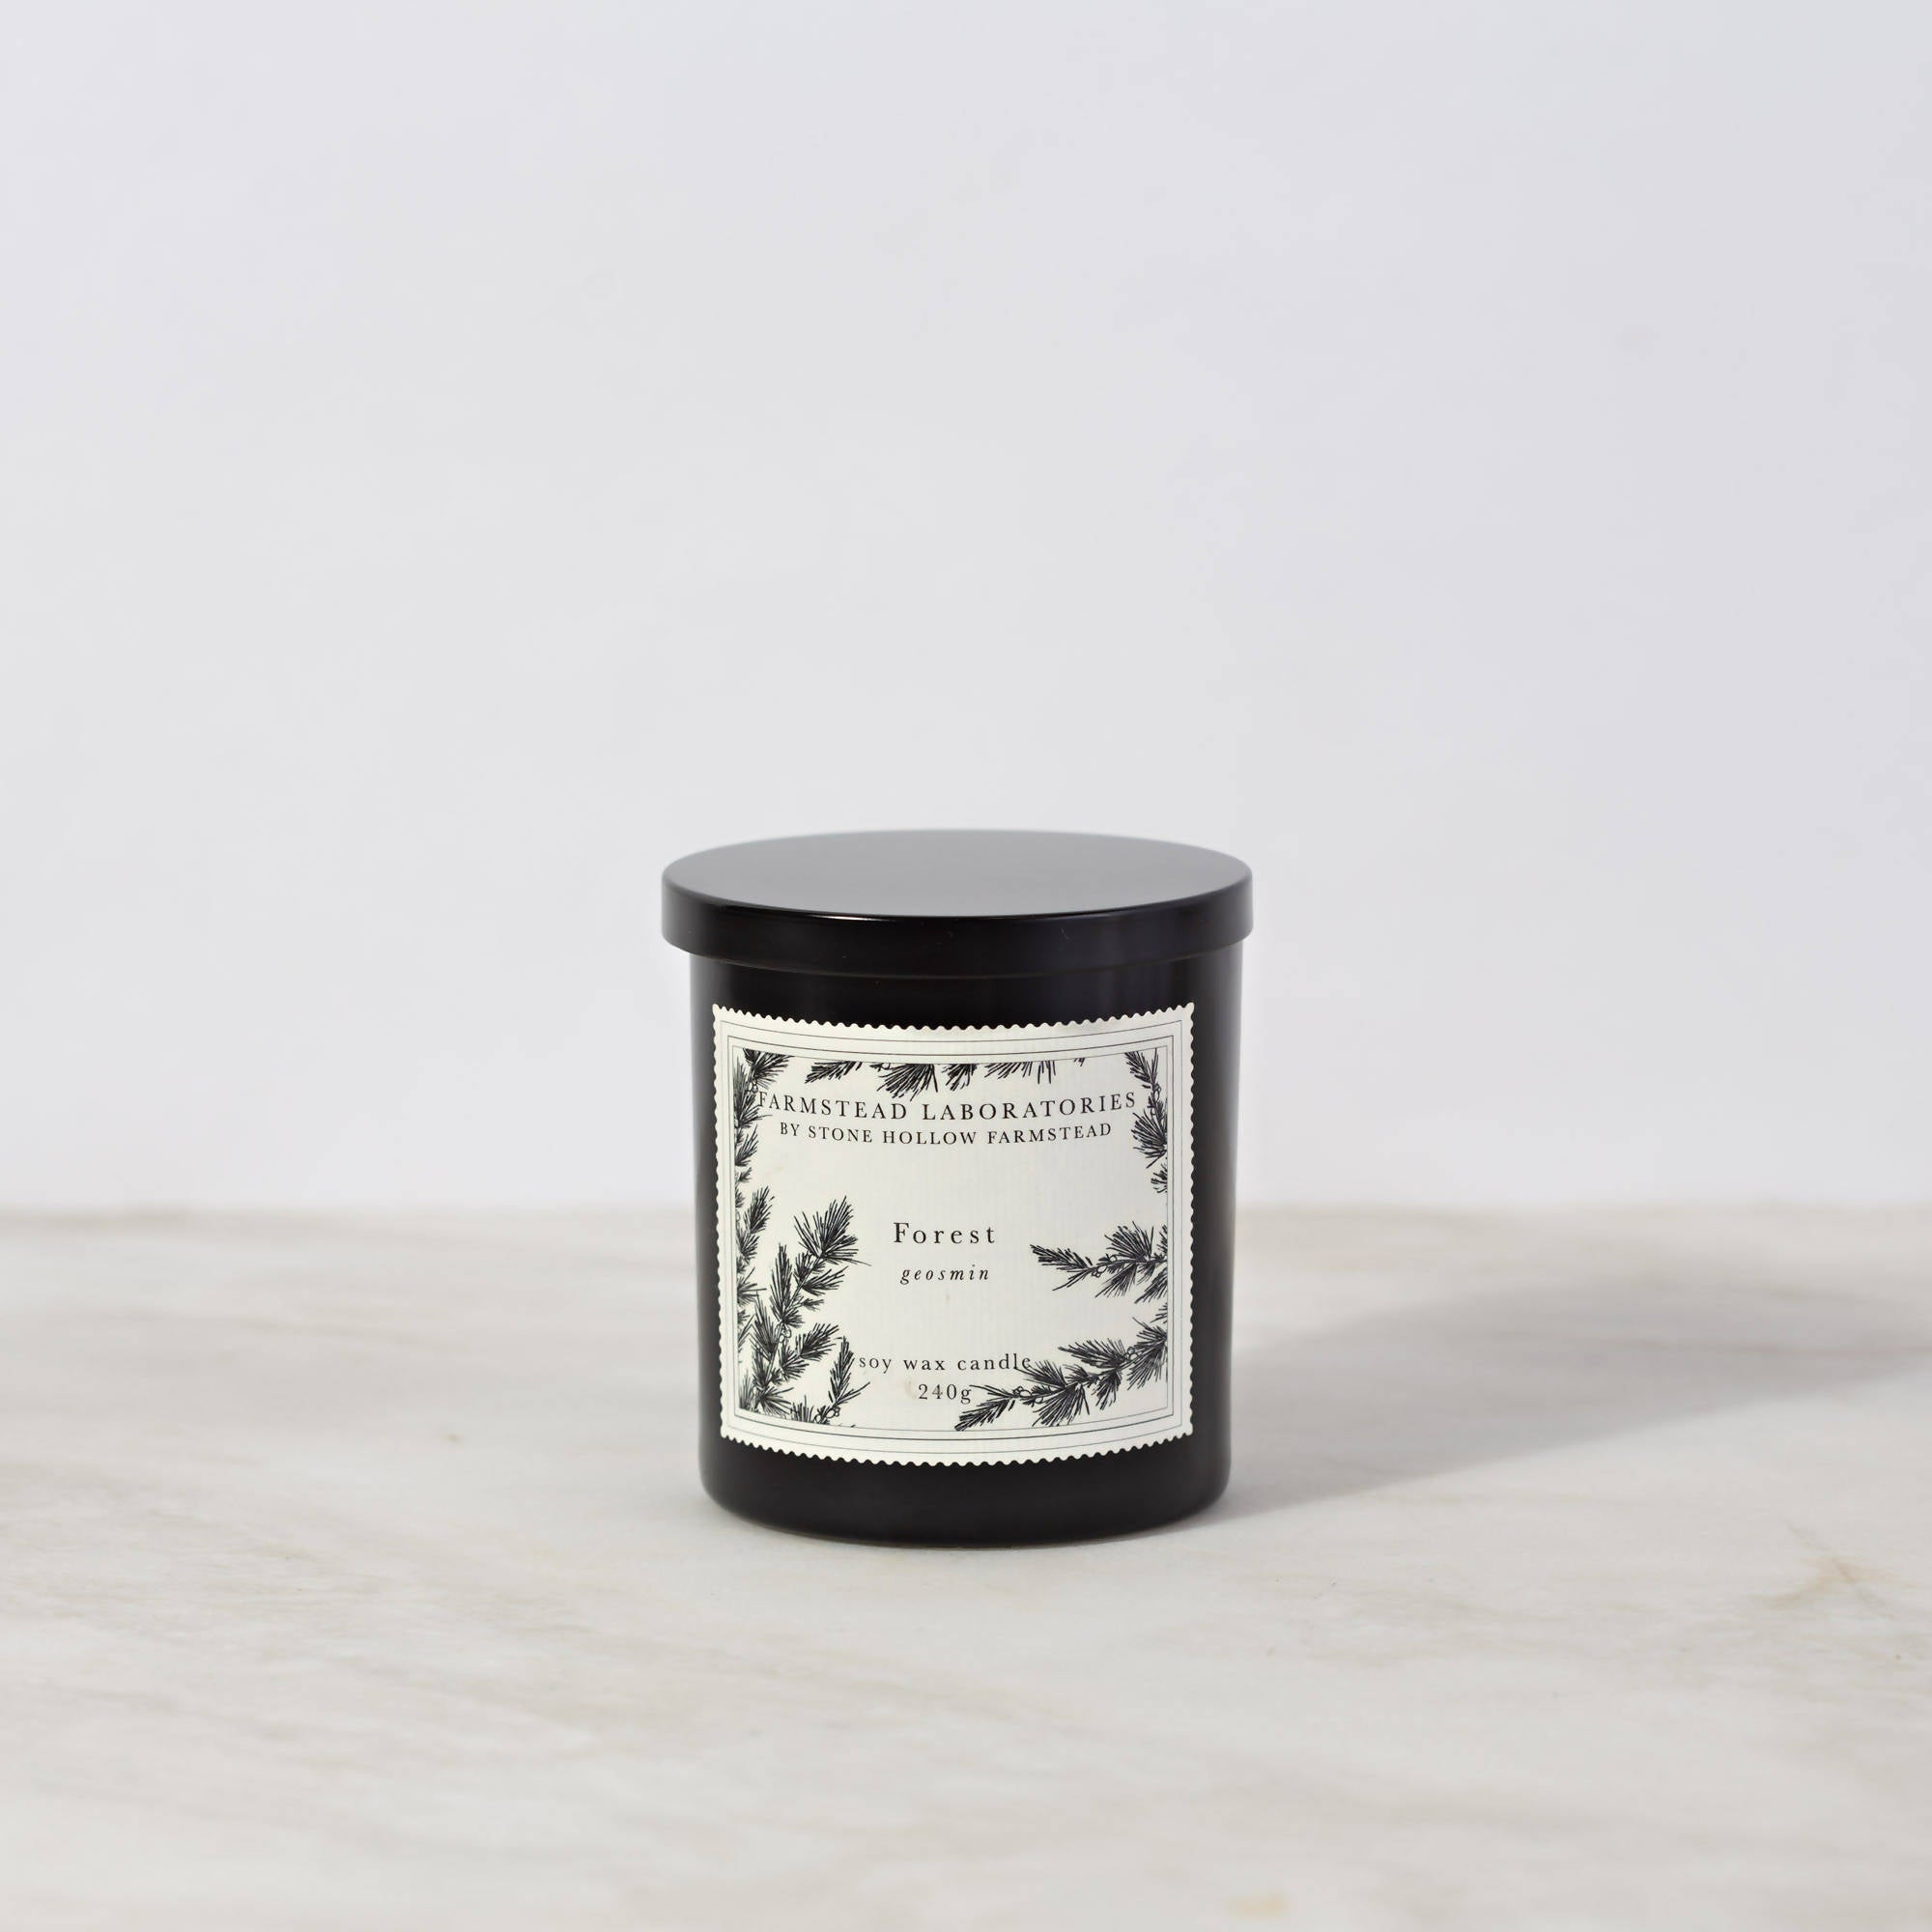 BOTANICAL SOY WAX CANDLE / FOREST